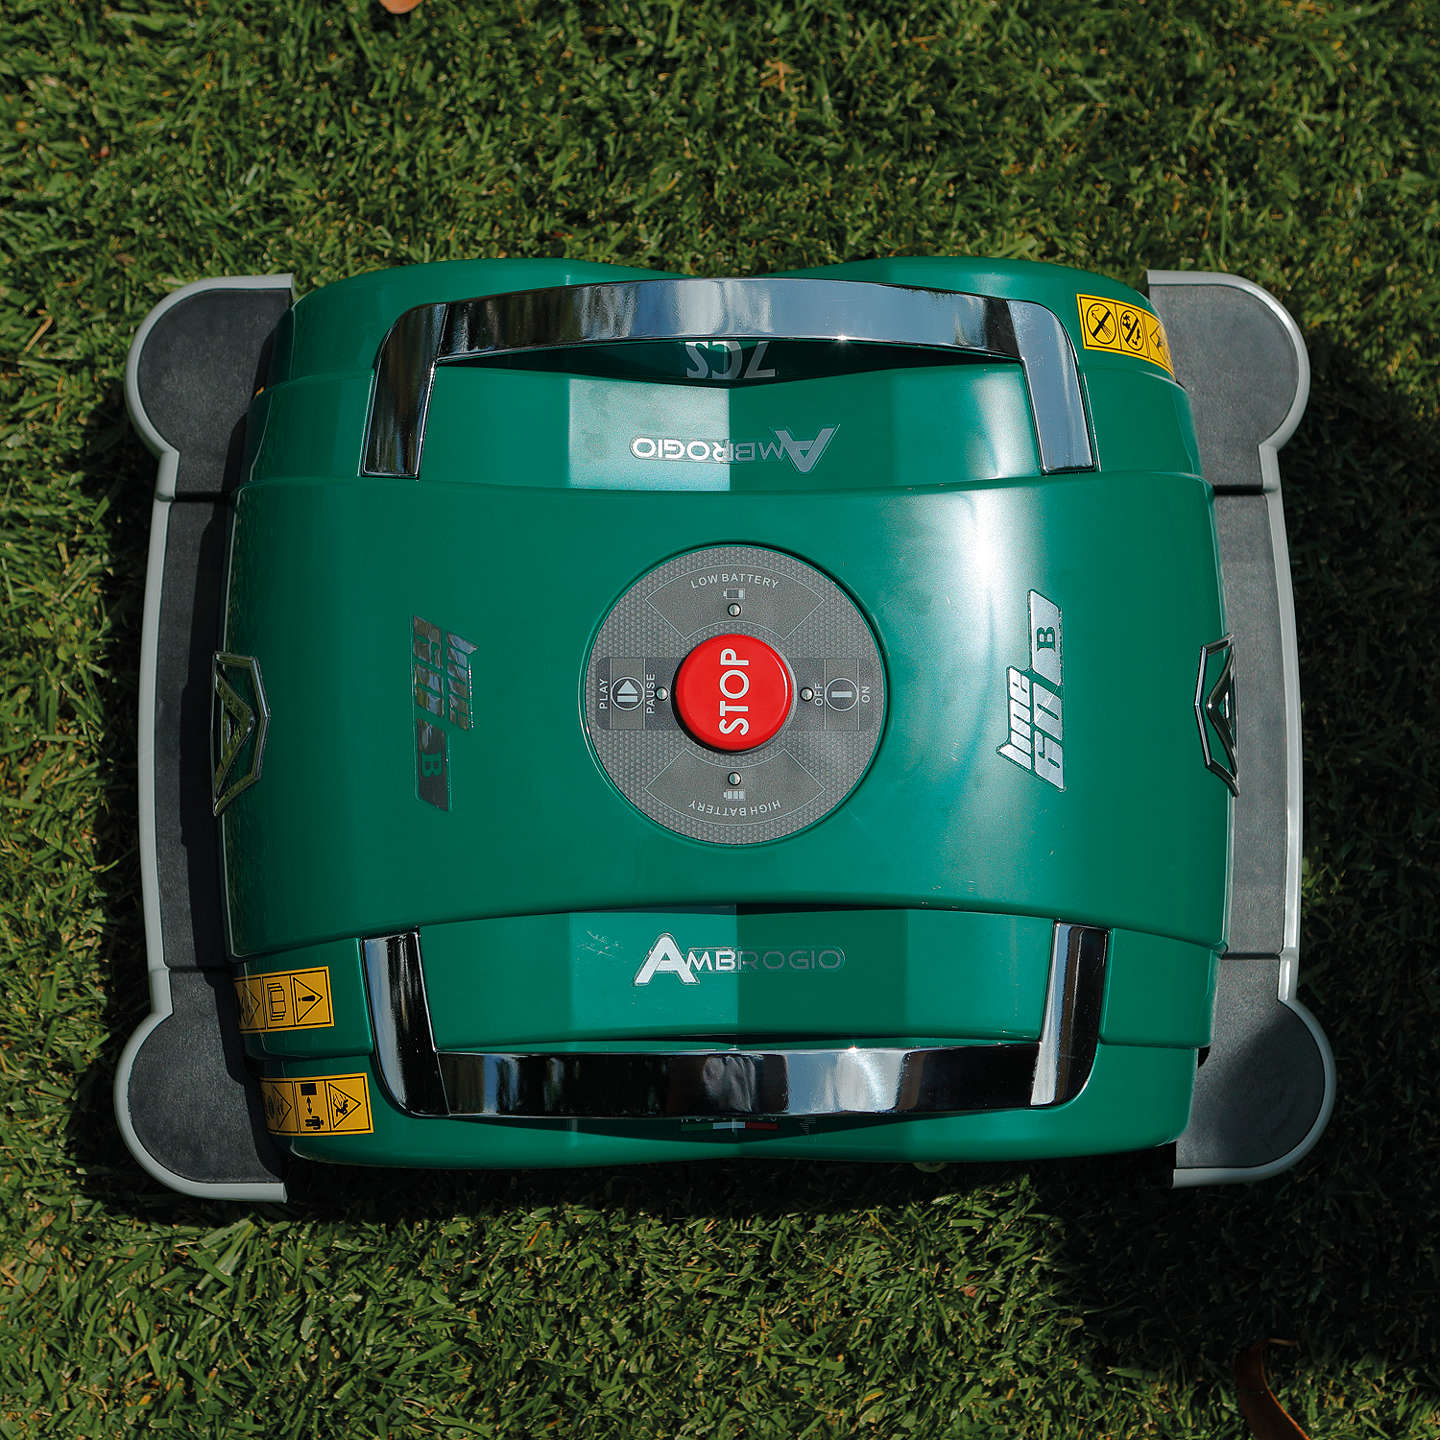 Ambrogio L60 Deluxe Automatic Robotic Lawnmower